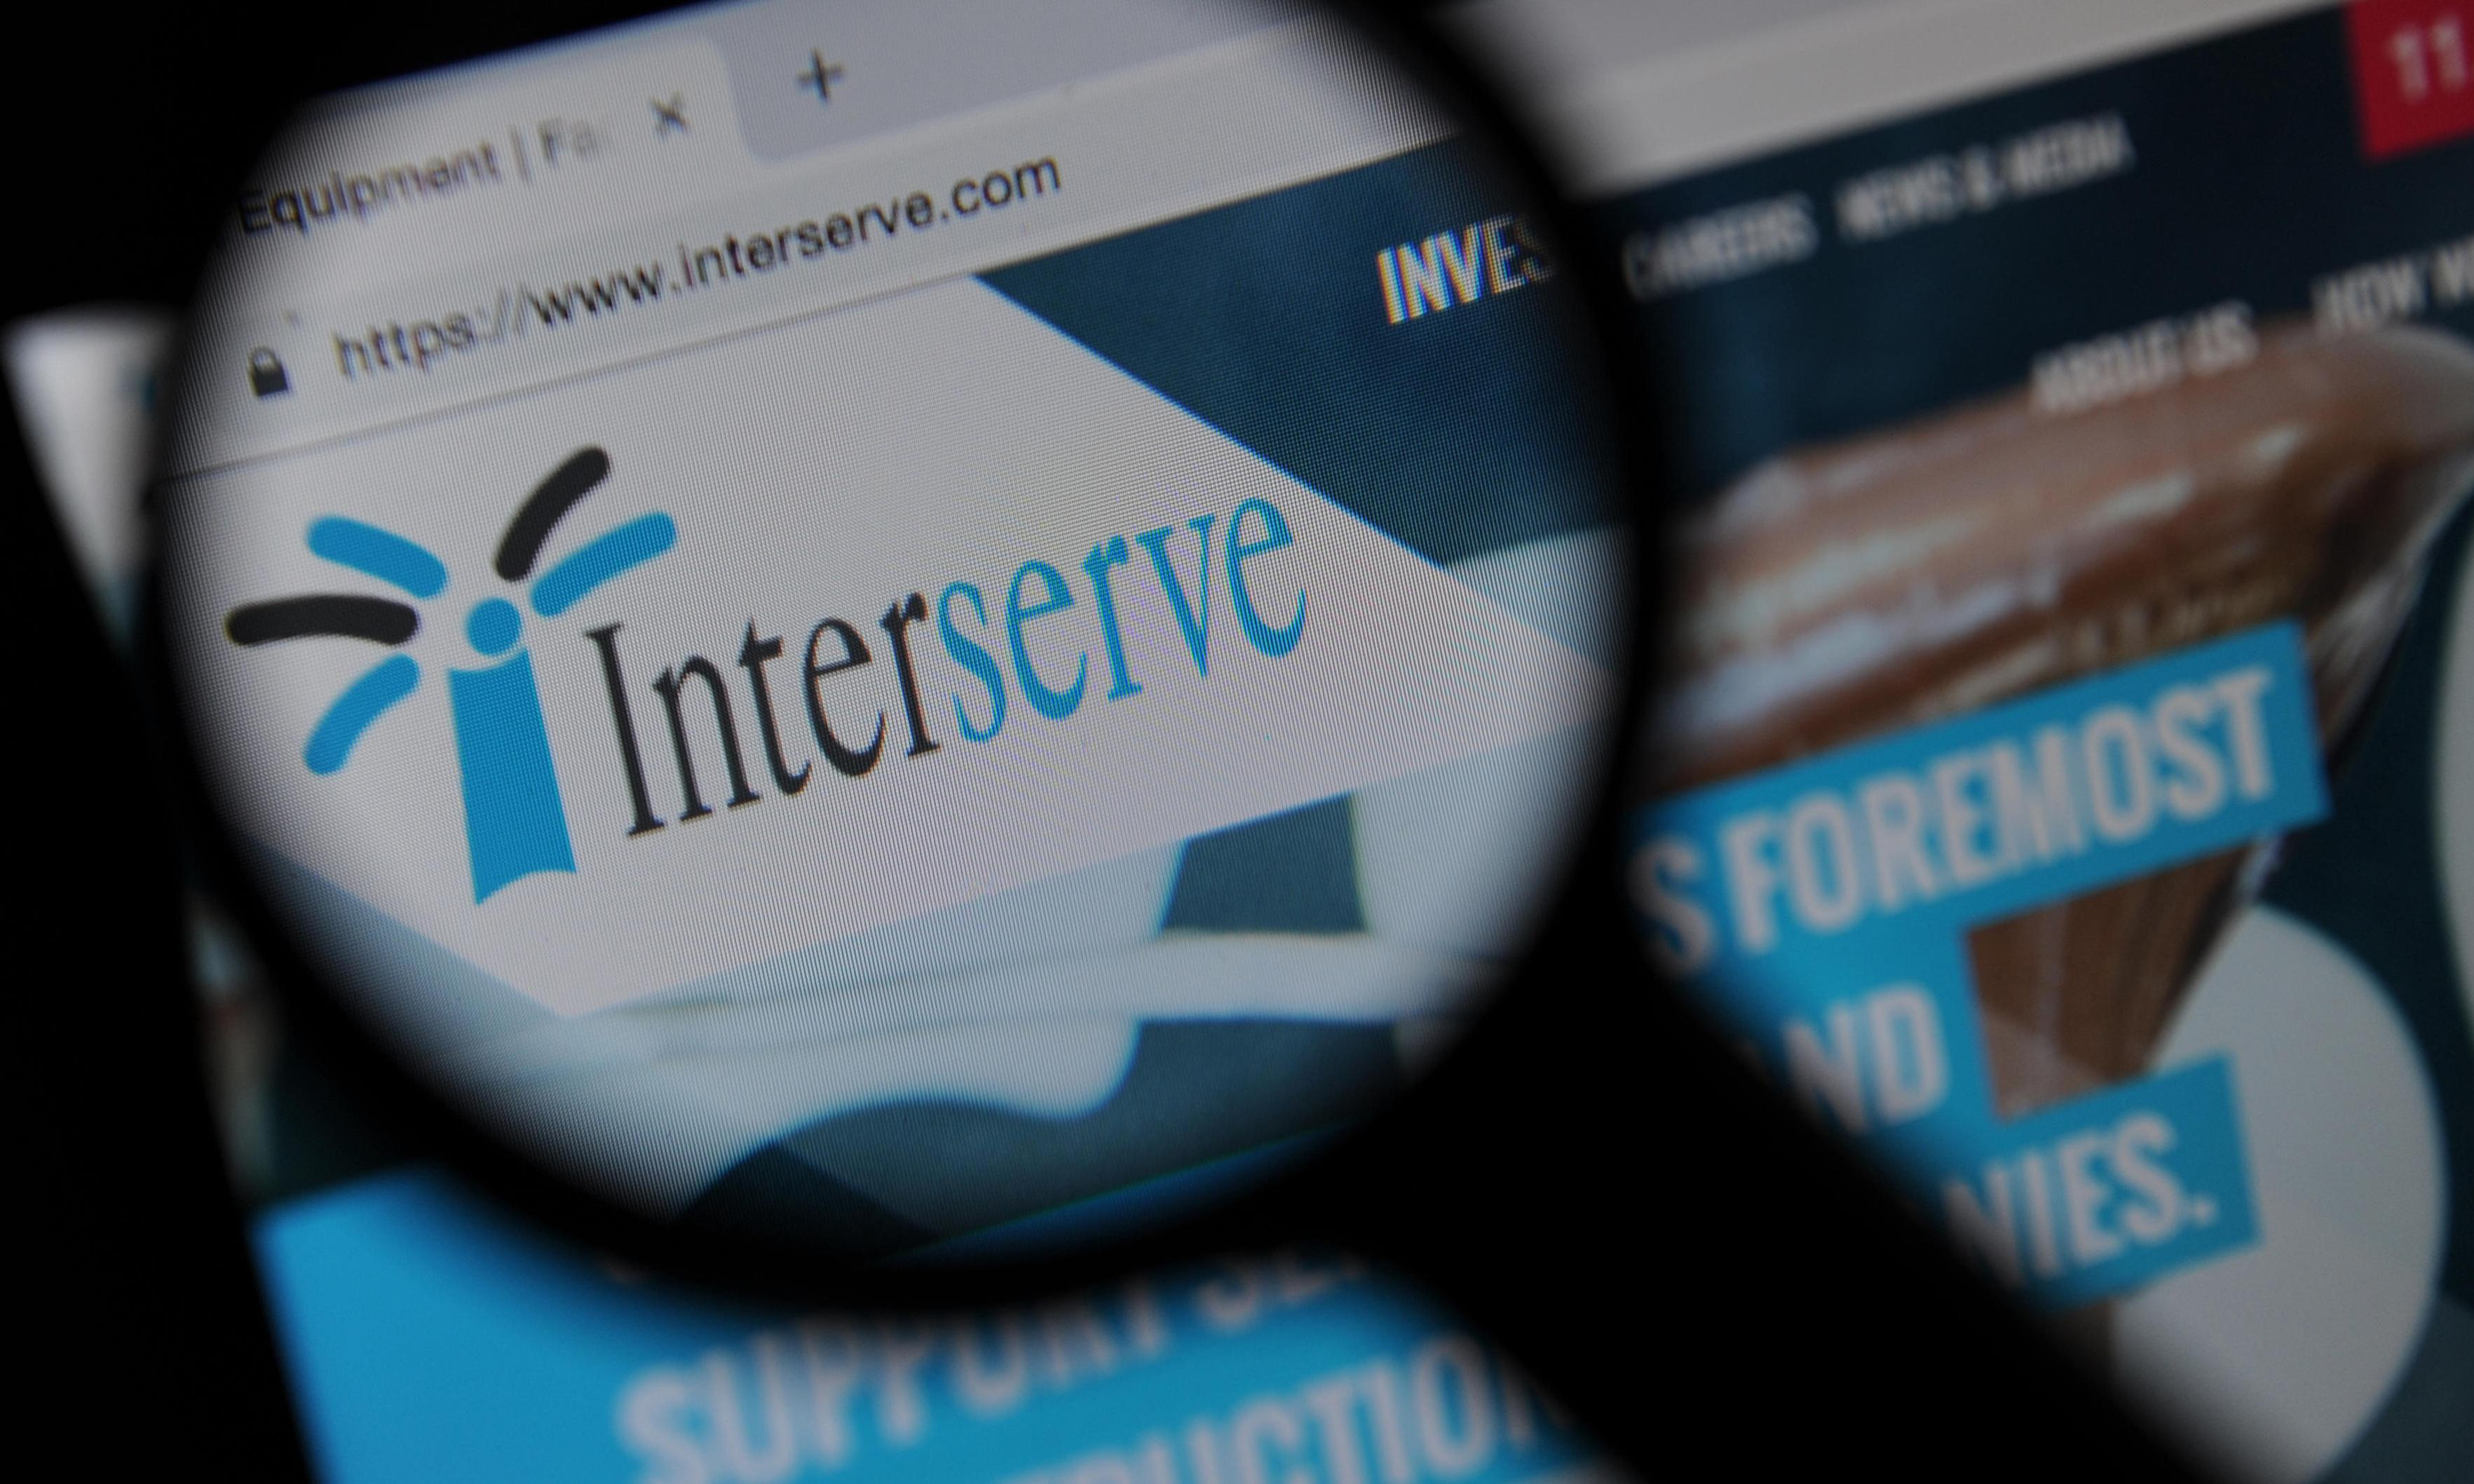 Interserve Update: Flipboard: Interserve To Go Into Administration After